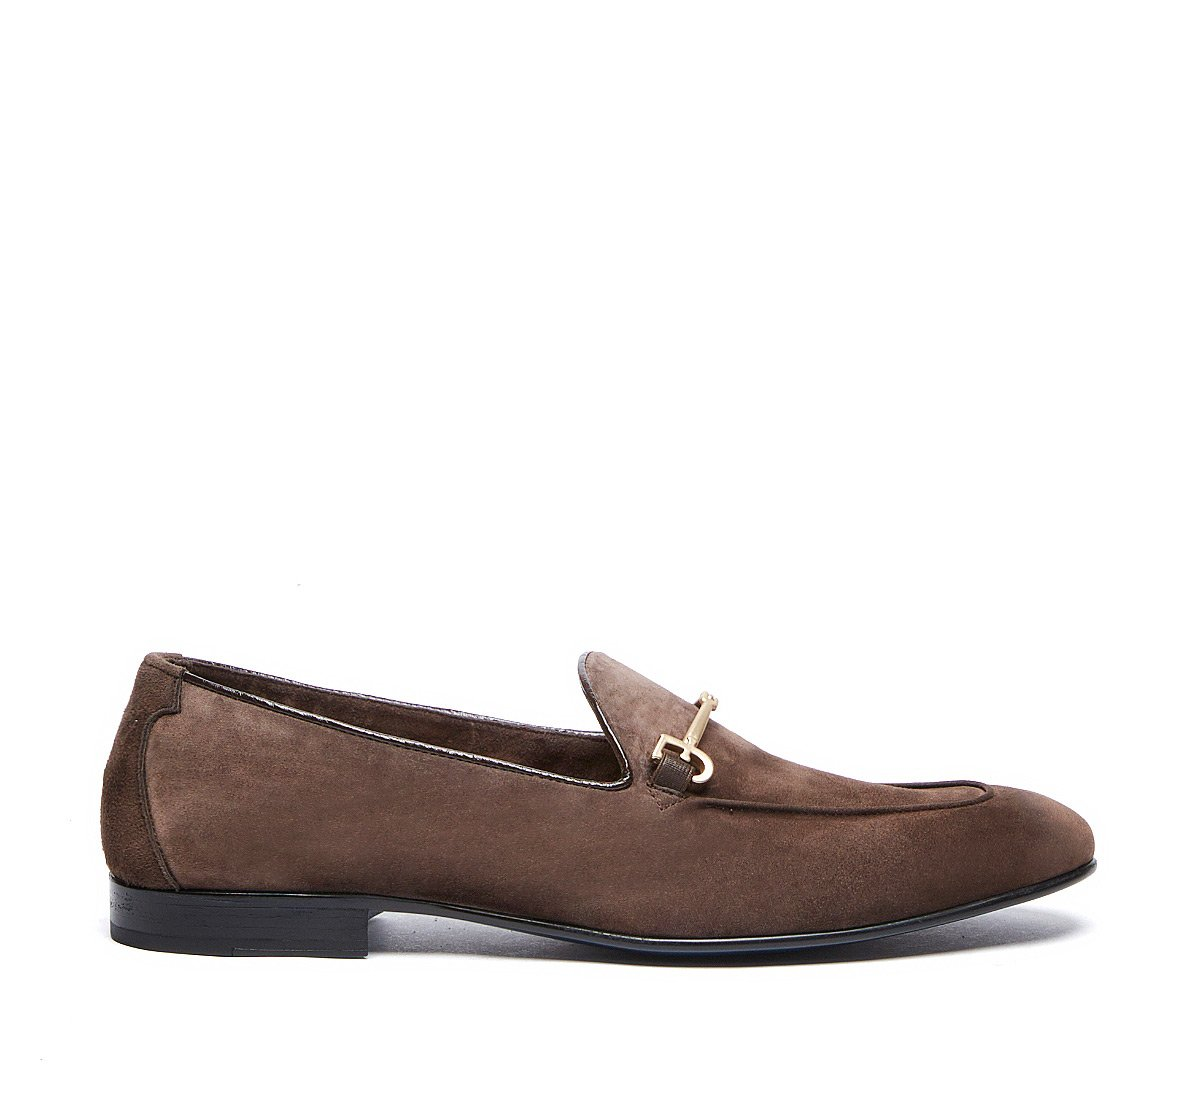 Fabi Classic moccasins in soft unlined calfskin